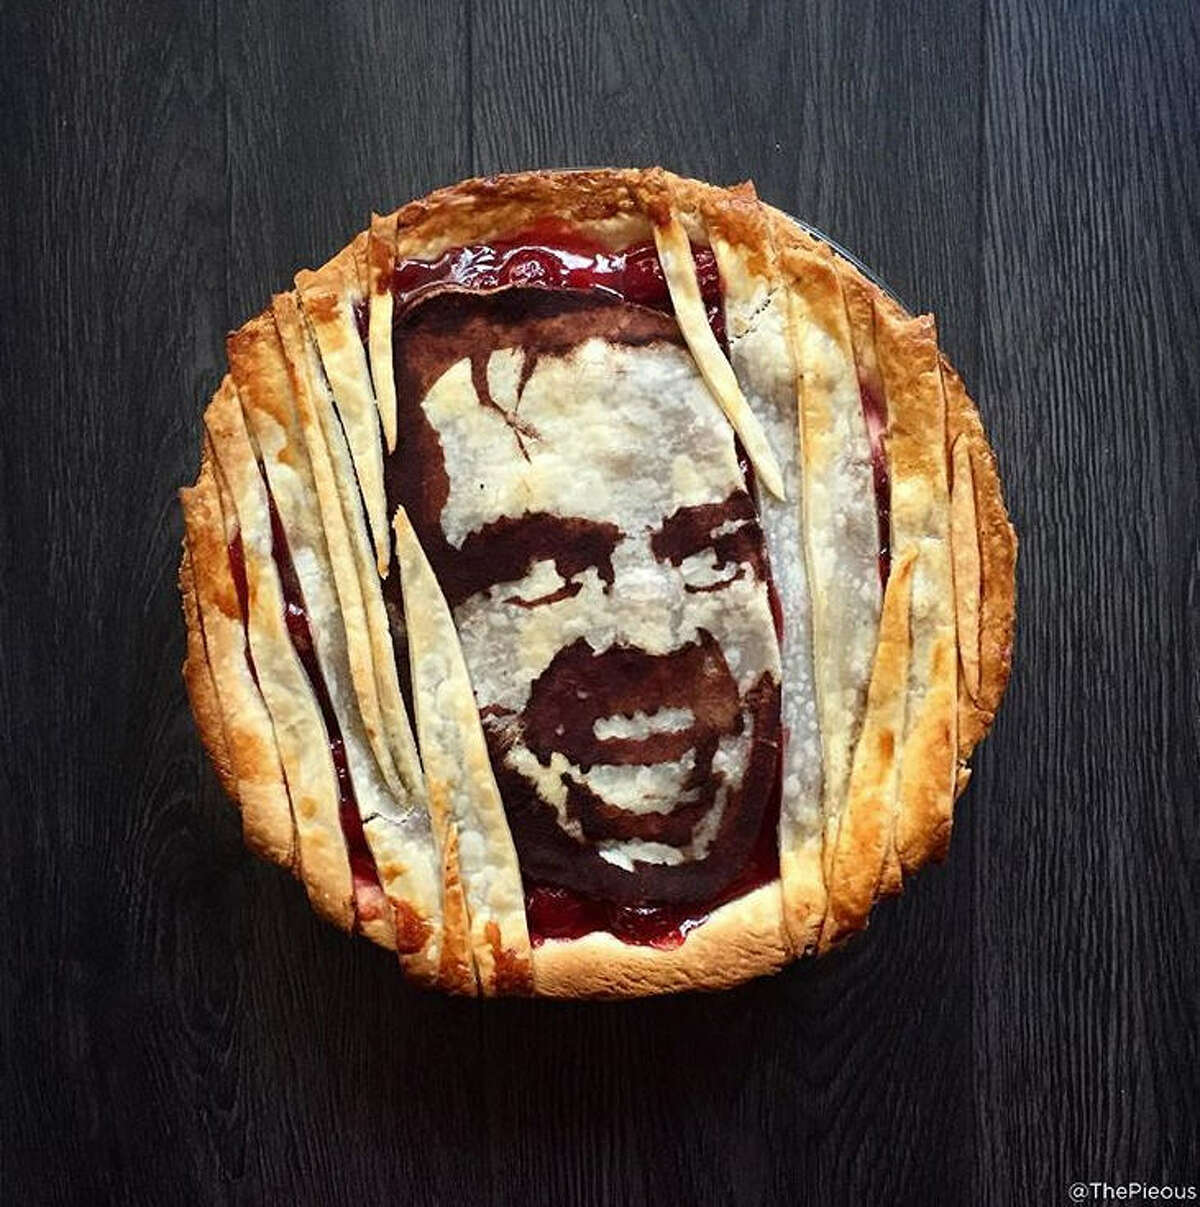 Jessica Leigh Clark-Bojin is a master baker whose pies are a delicious combination of fine art and food.